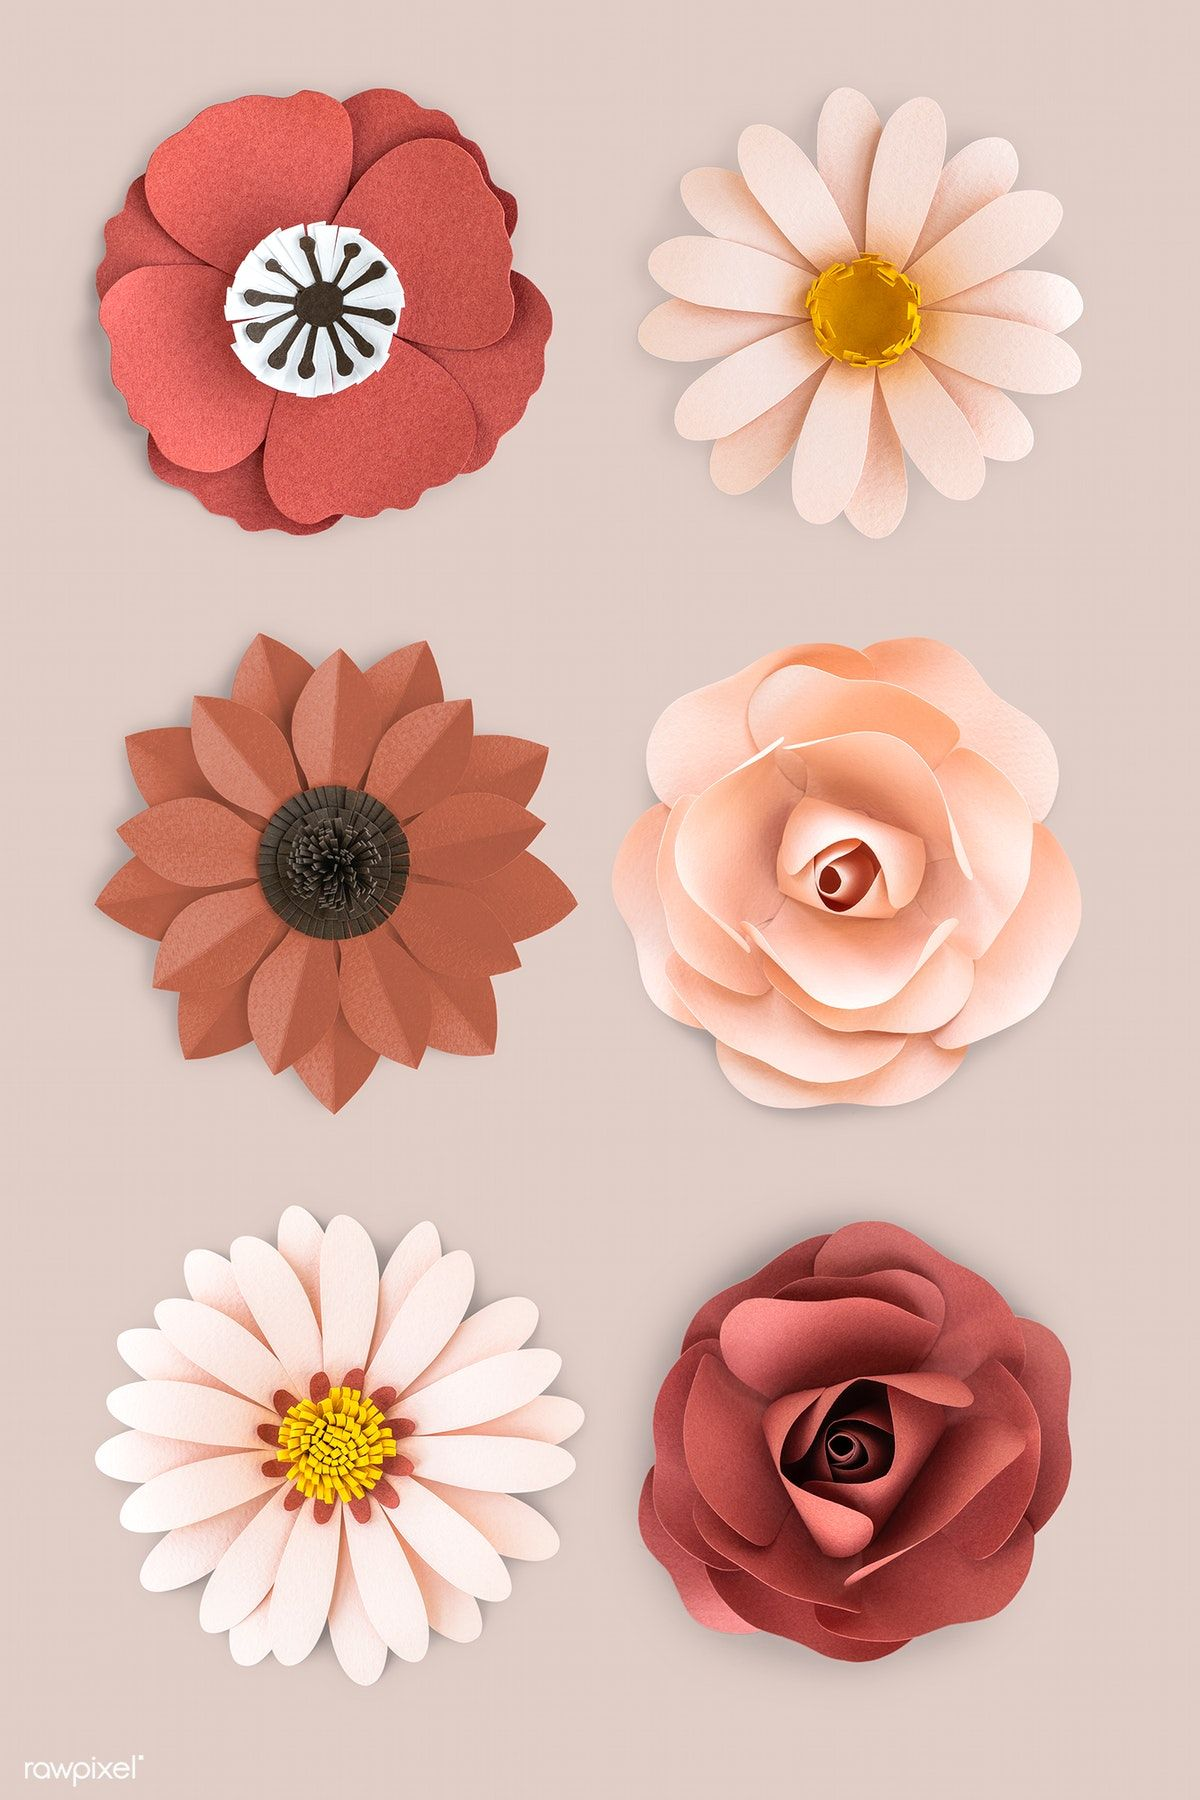 Download Premium Psd Of Earth Tone Flower Paper Craft Set 1202440